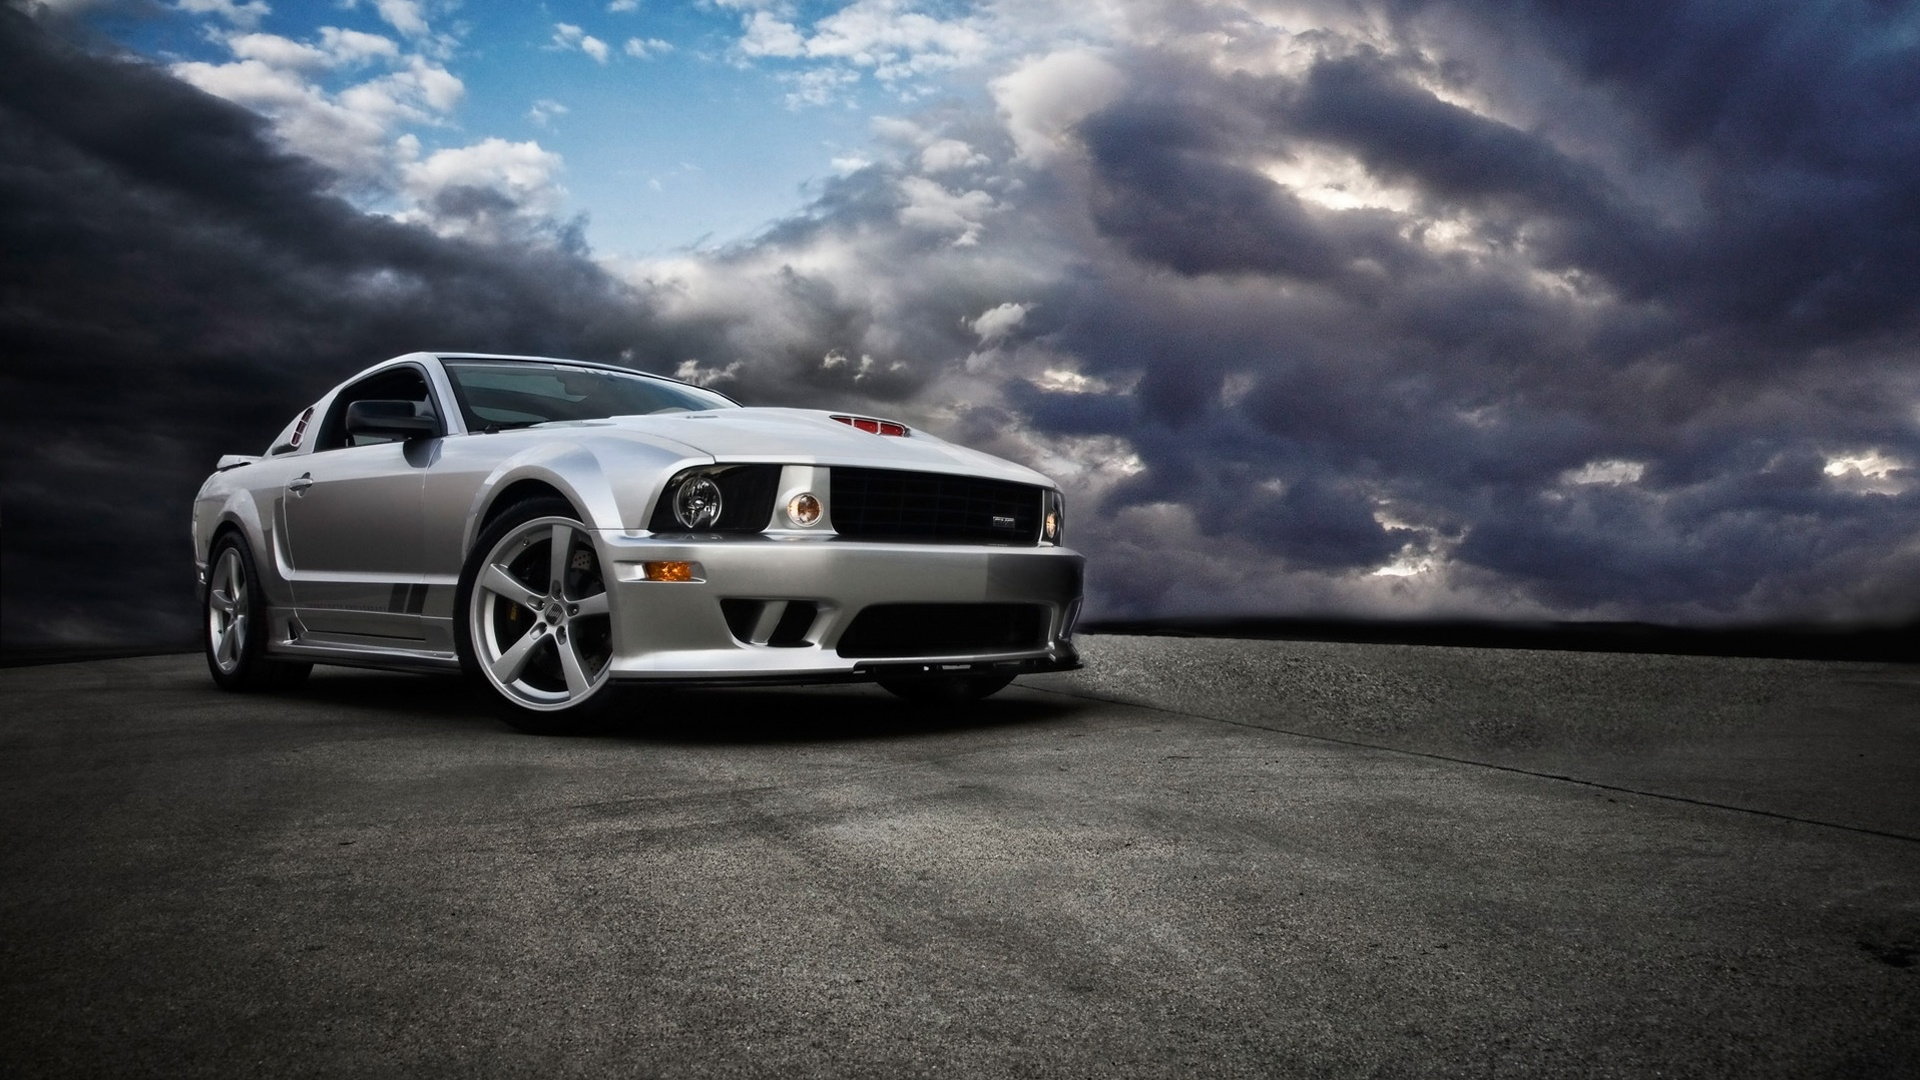 Ford hd wallpapers for 1920x1080 wallpapersafari